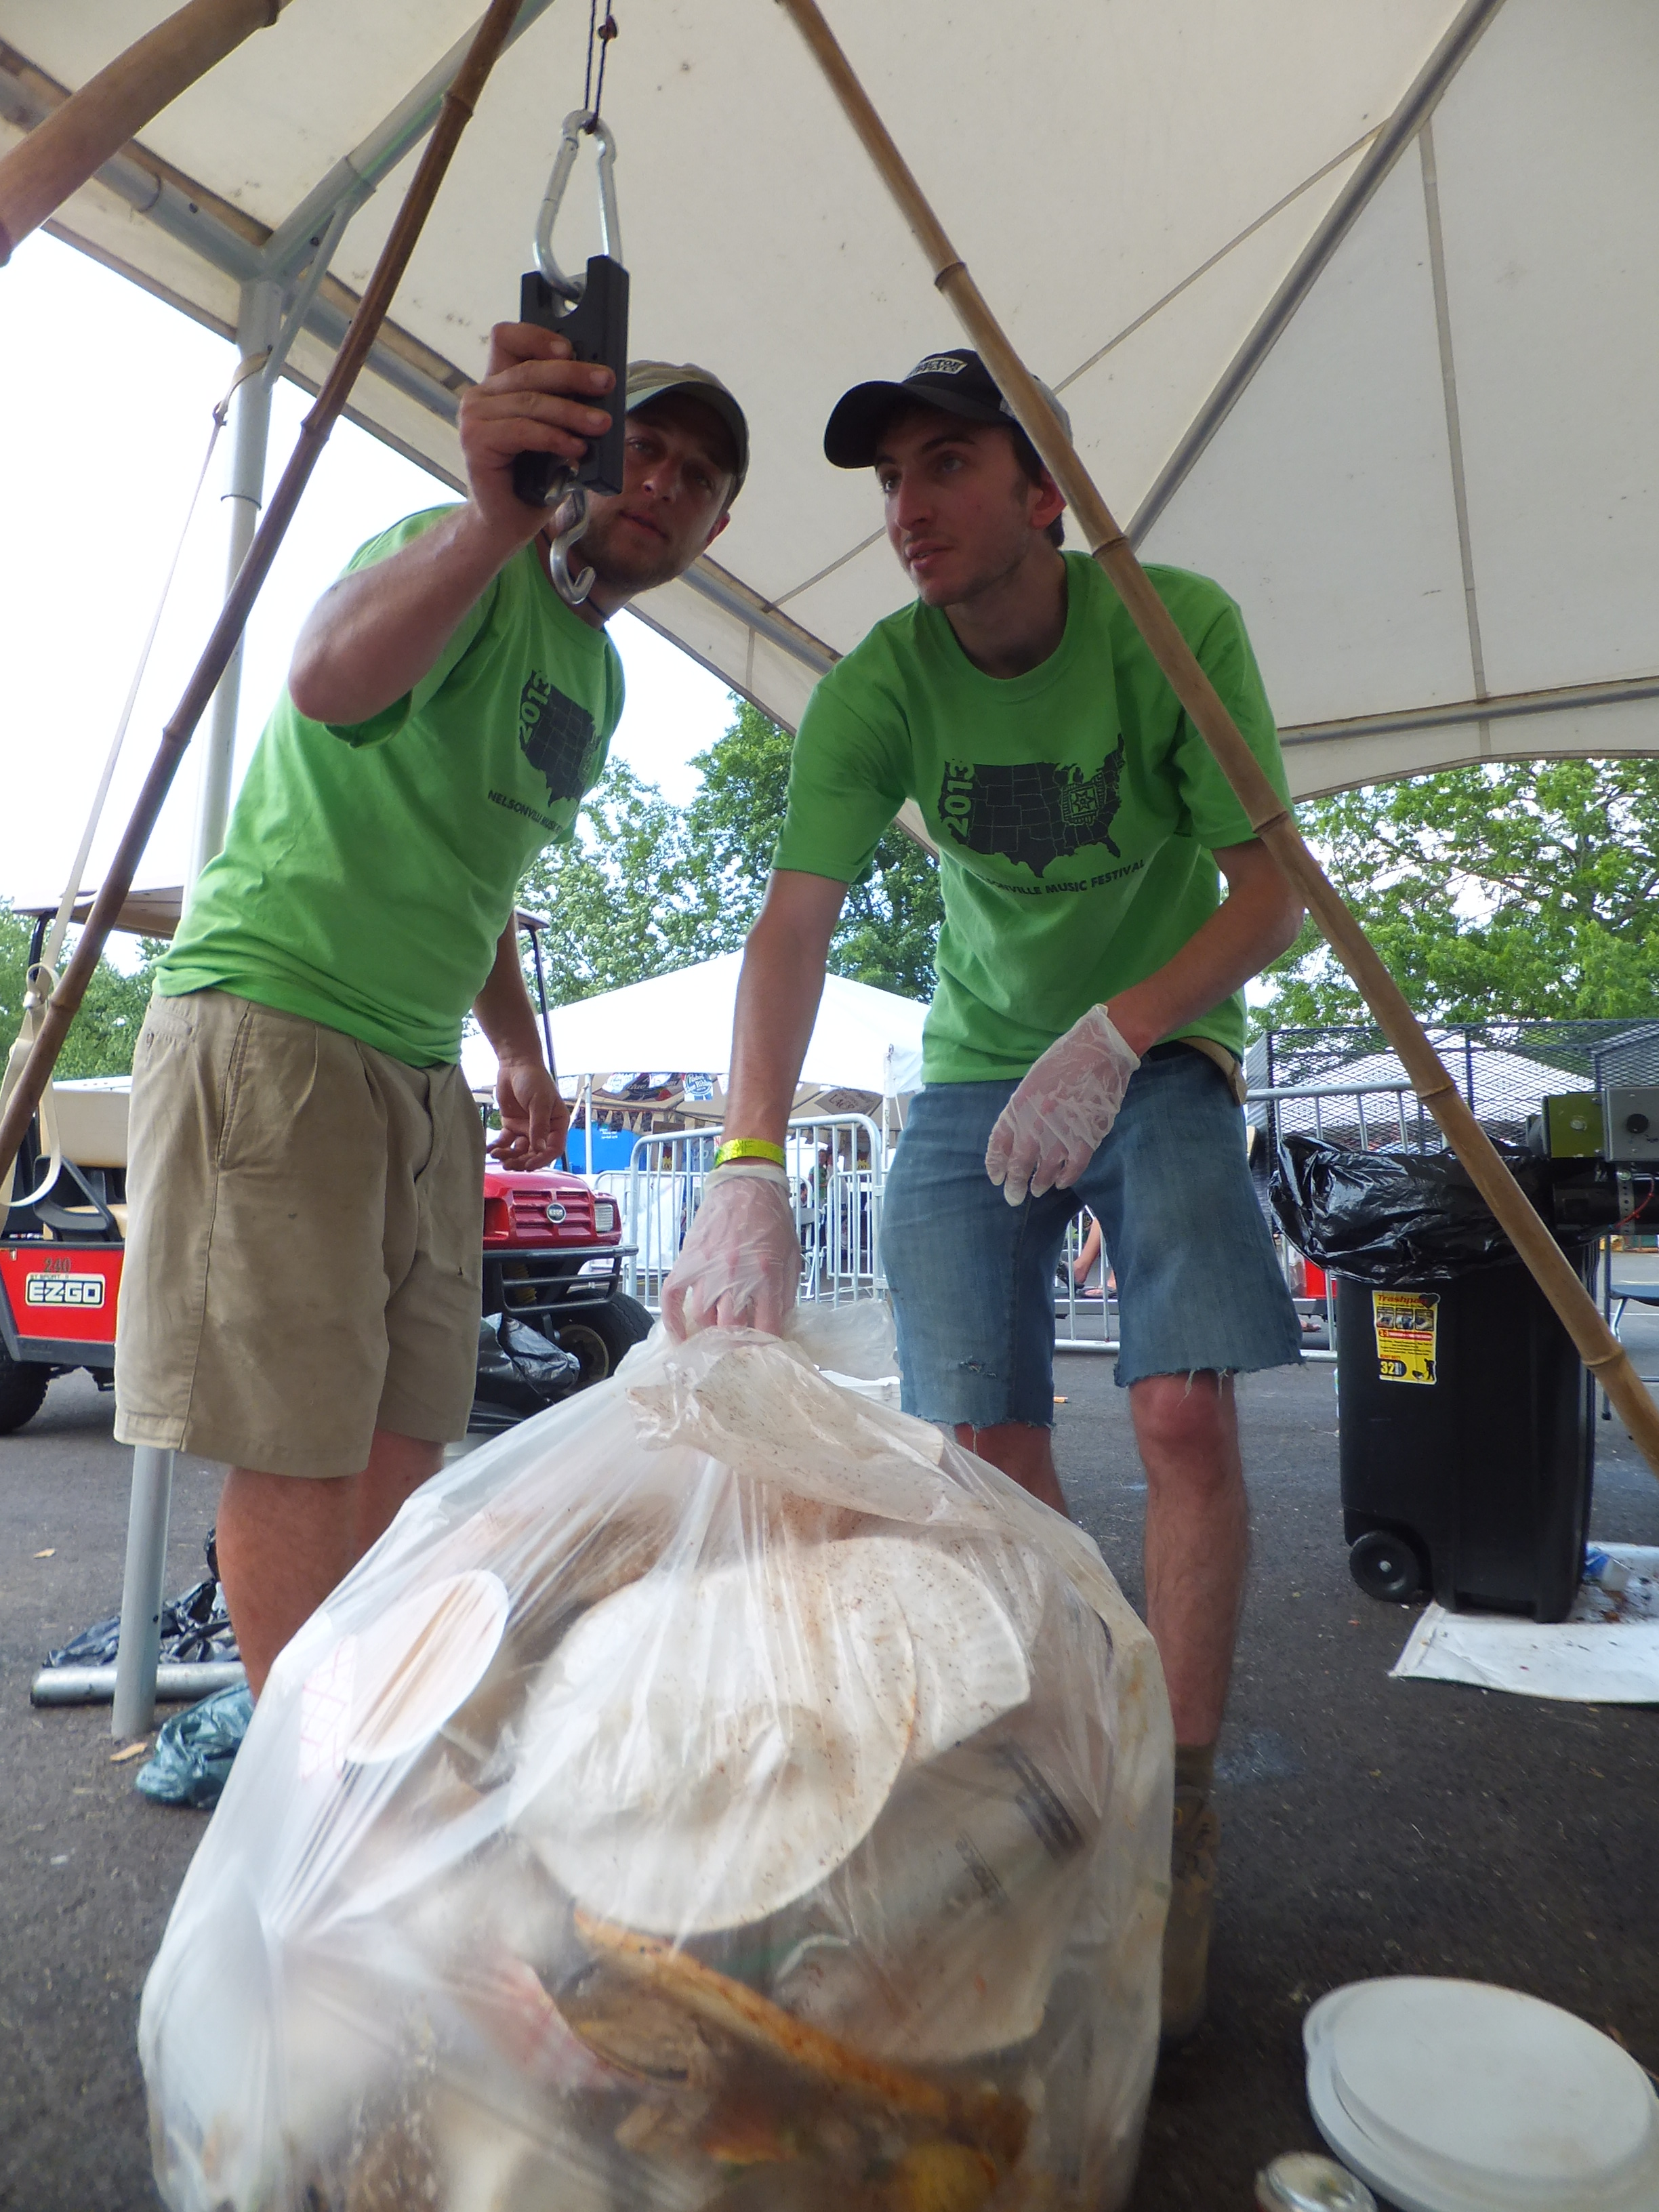 A staffer teaches a volunteer how to weight compostable materials at Nelsonville Music Festival, 2014.